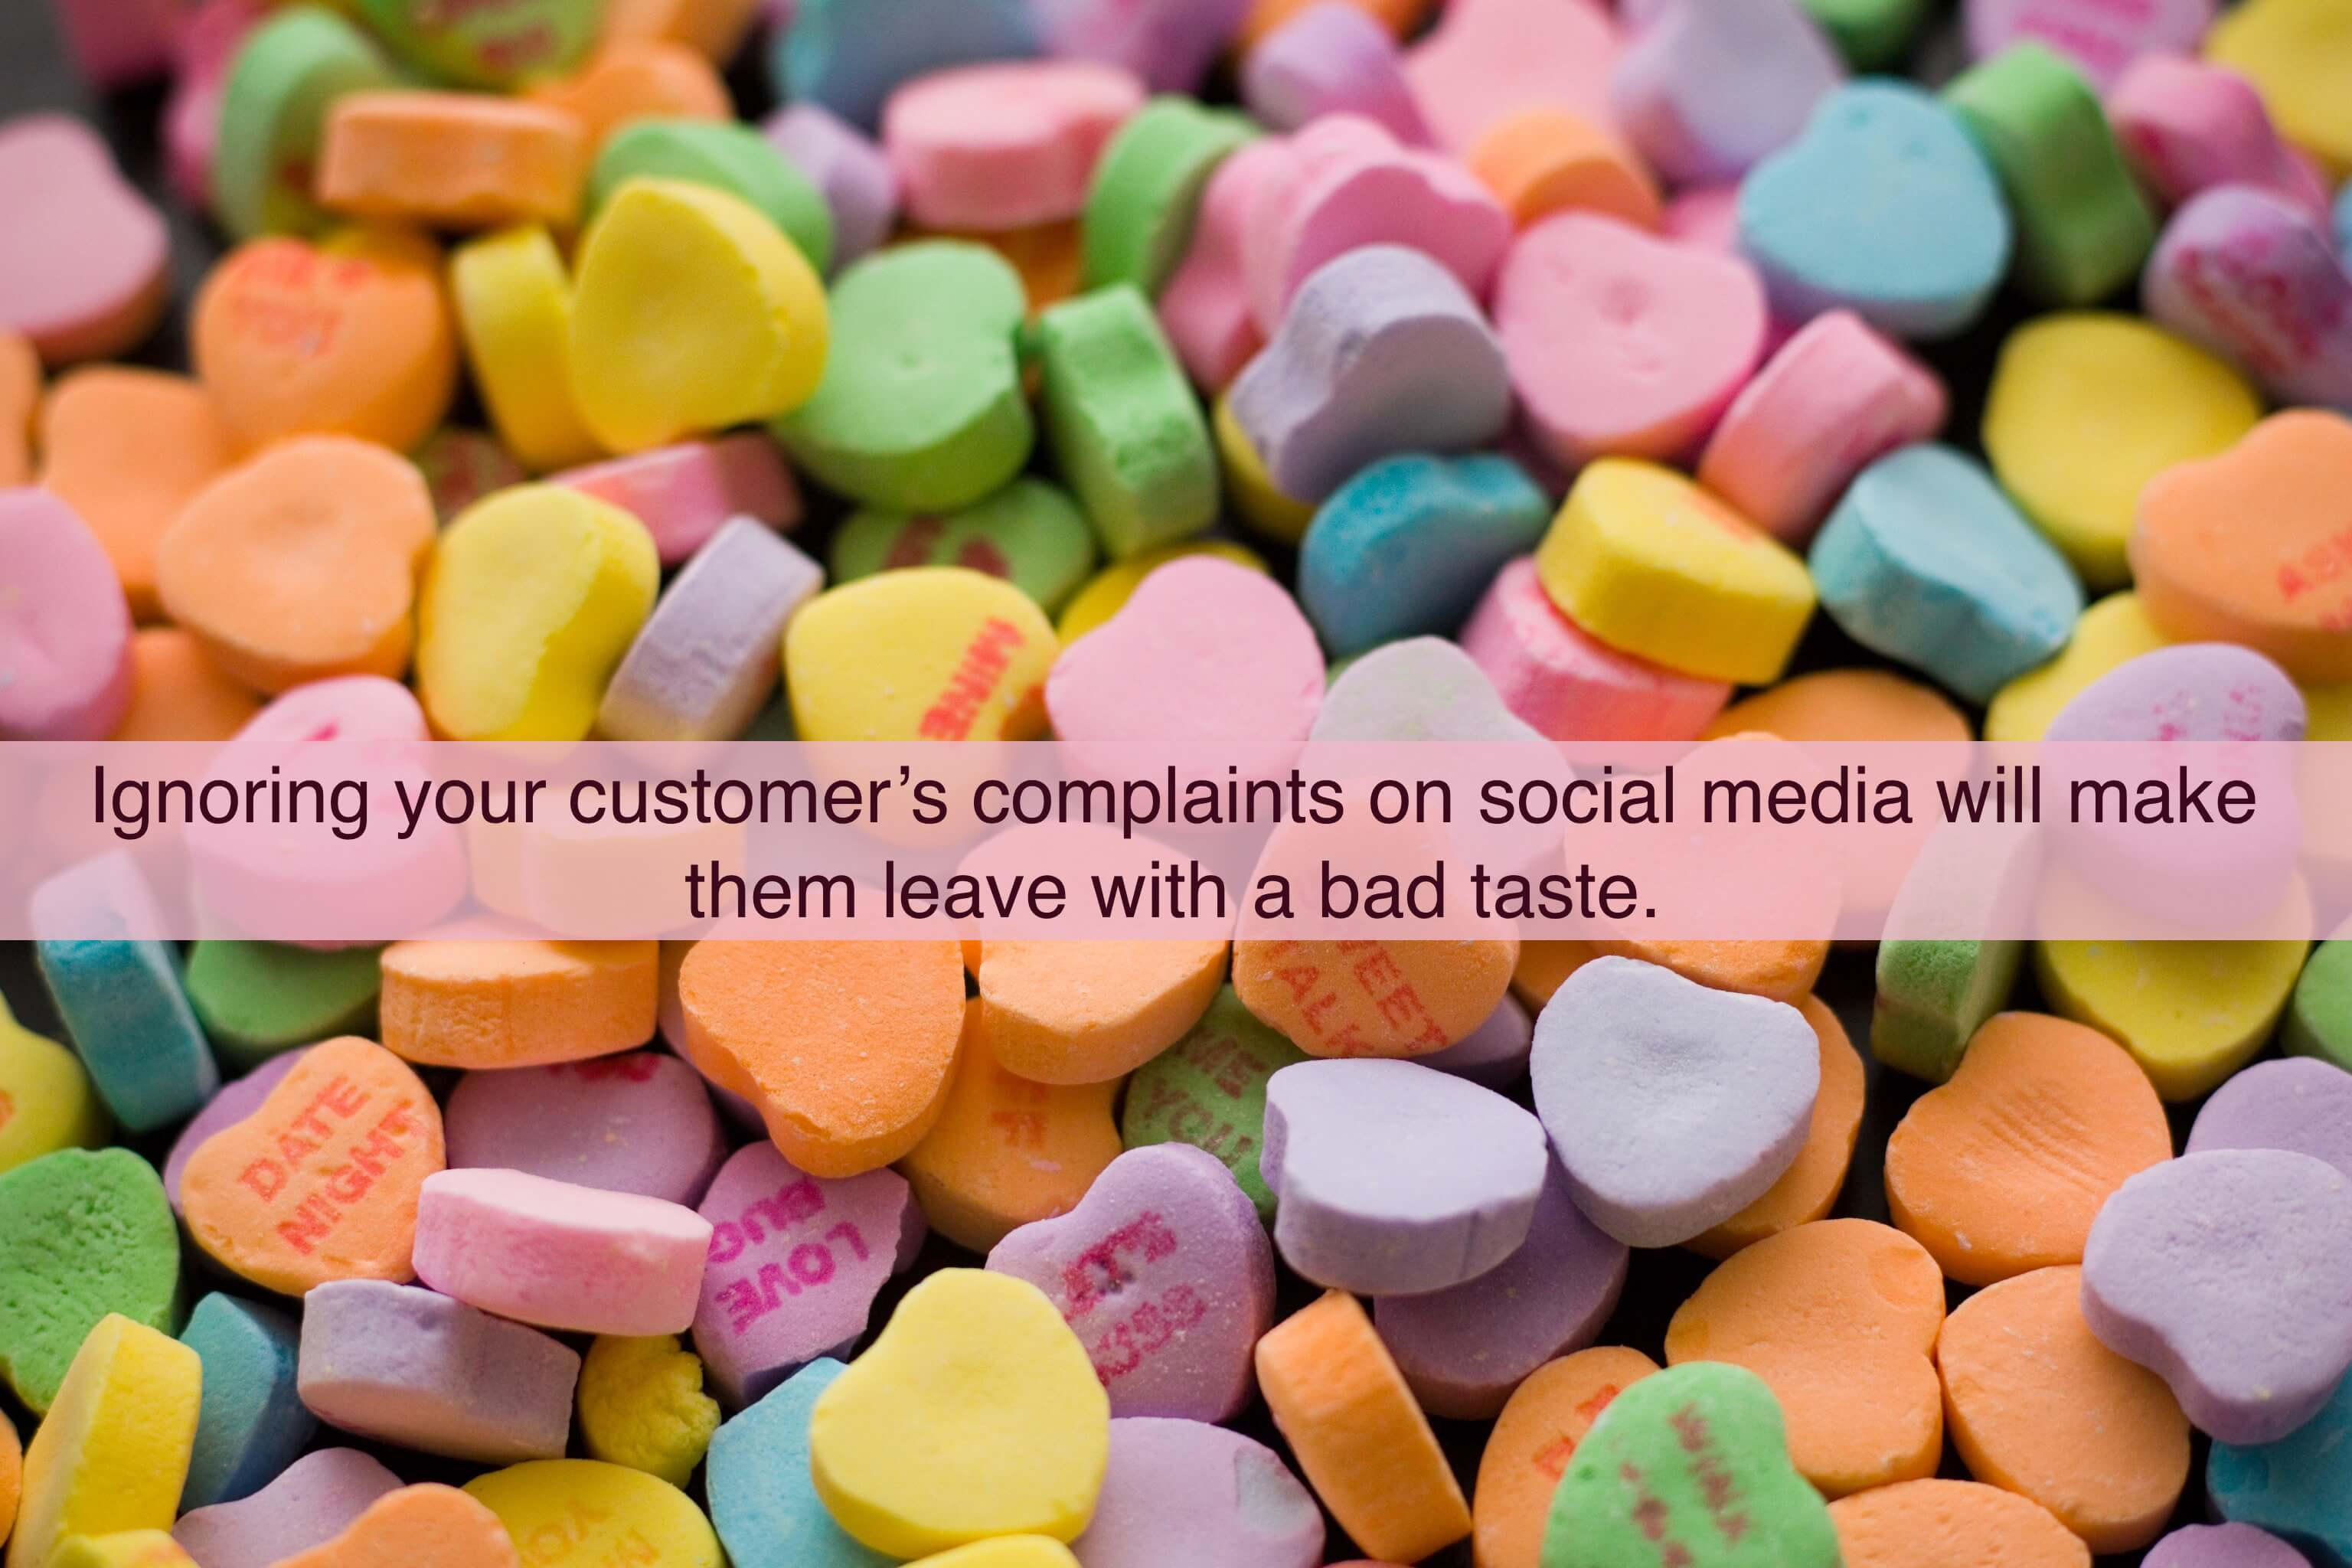 4. Ignoring your customer's complaints on social media will make them leave with a bad taste.